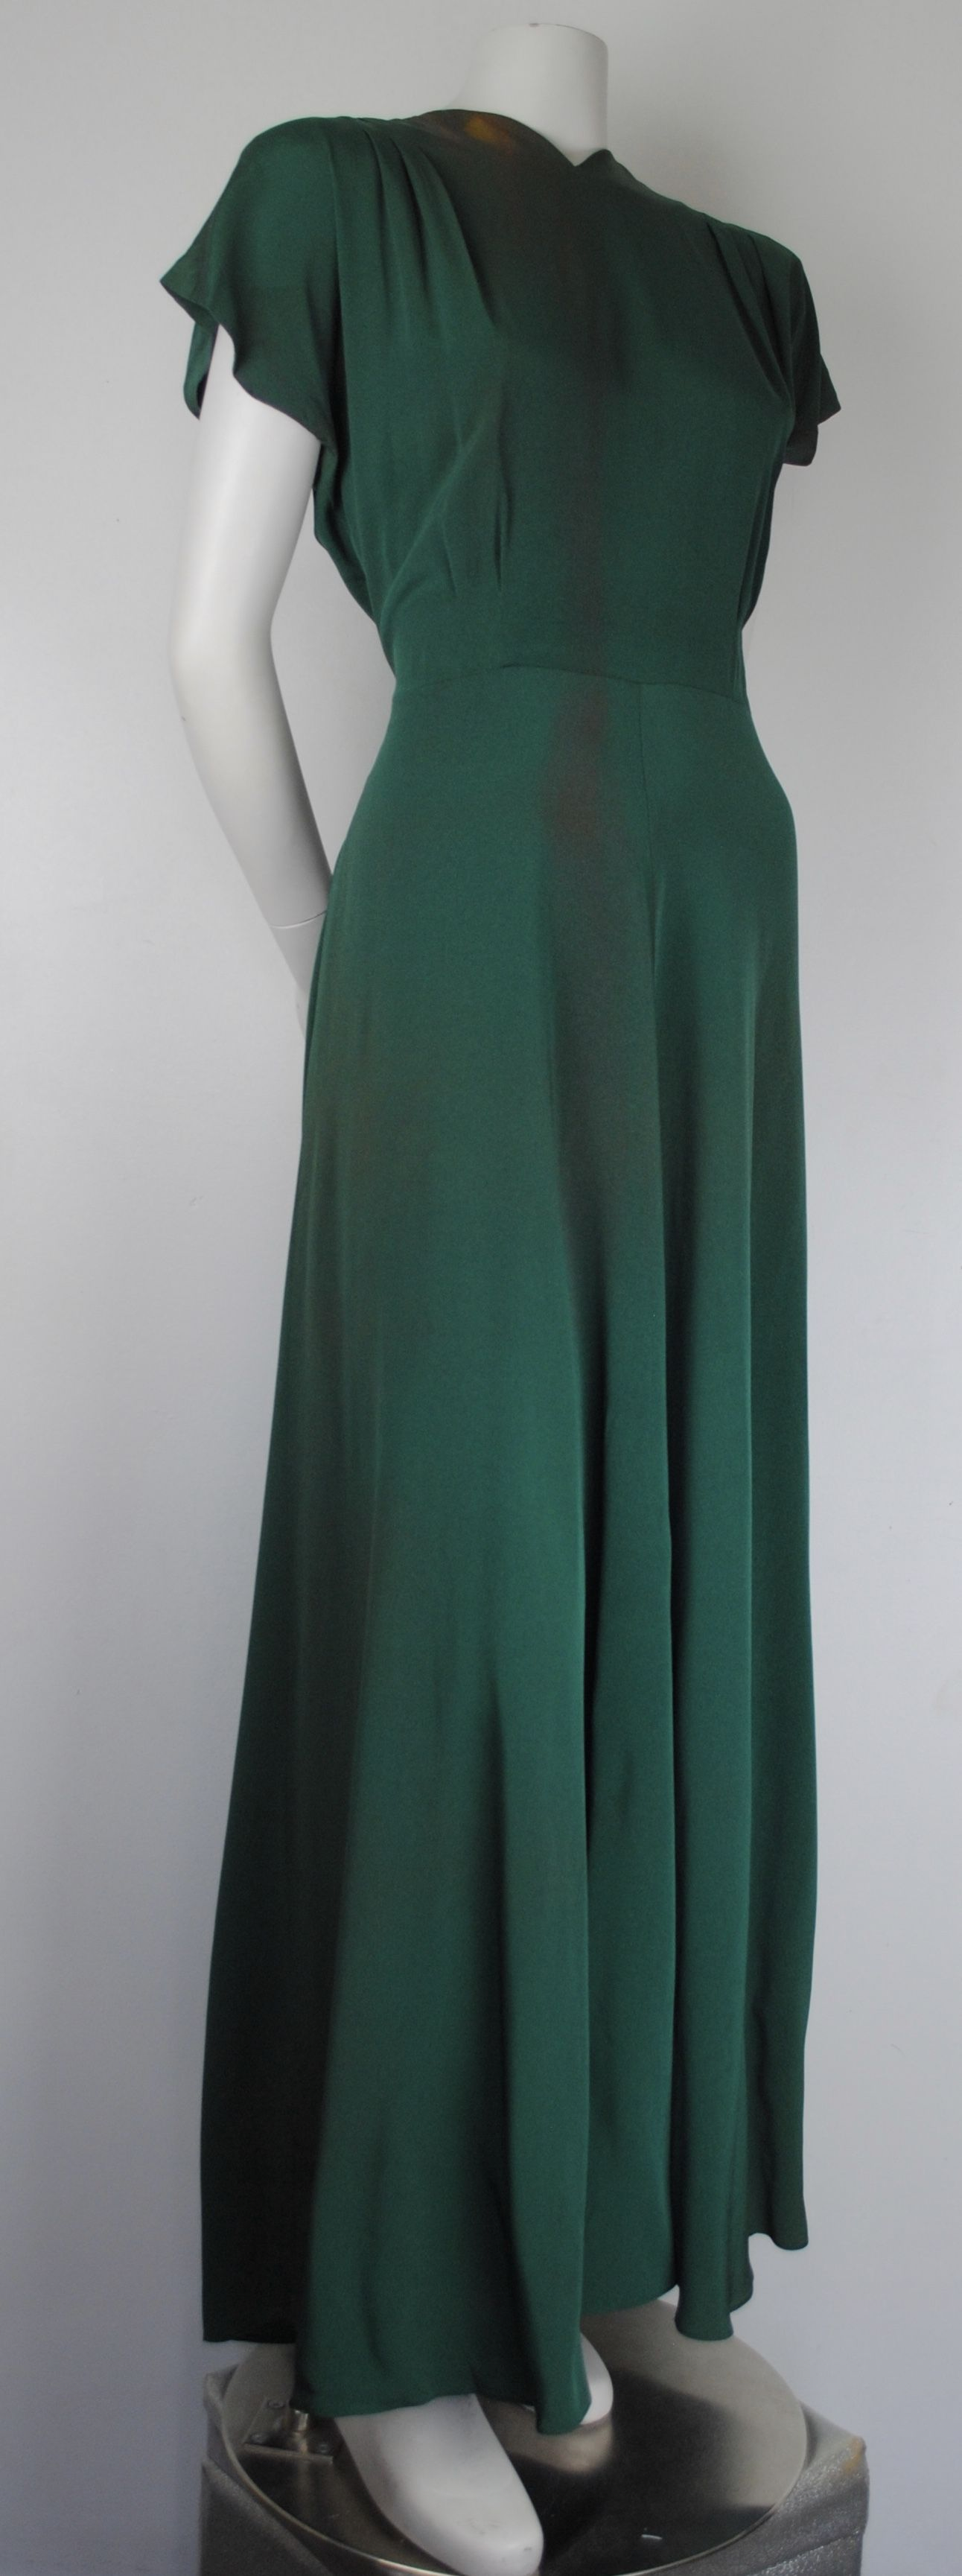 Sold 1940s Emerald Green Crepe Rayon Evening Gown Alda Wild